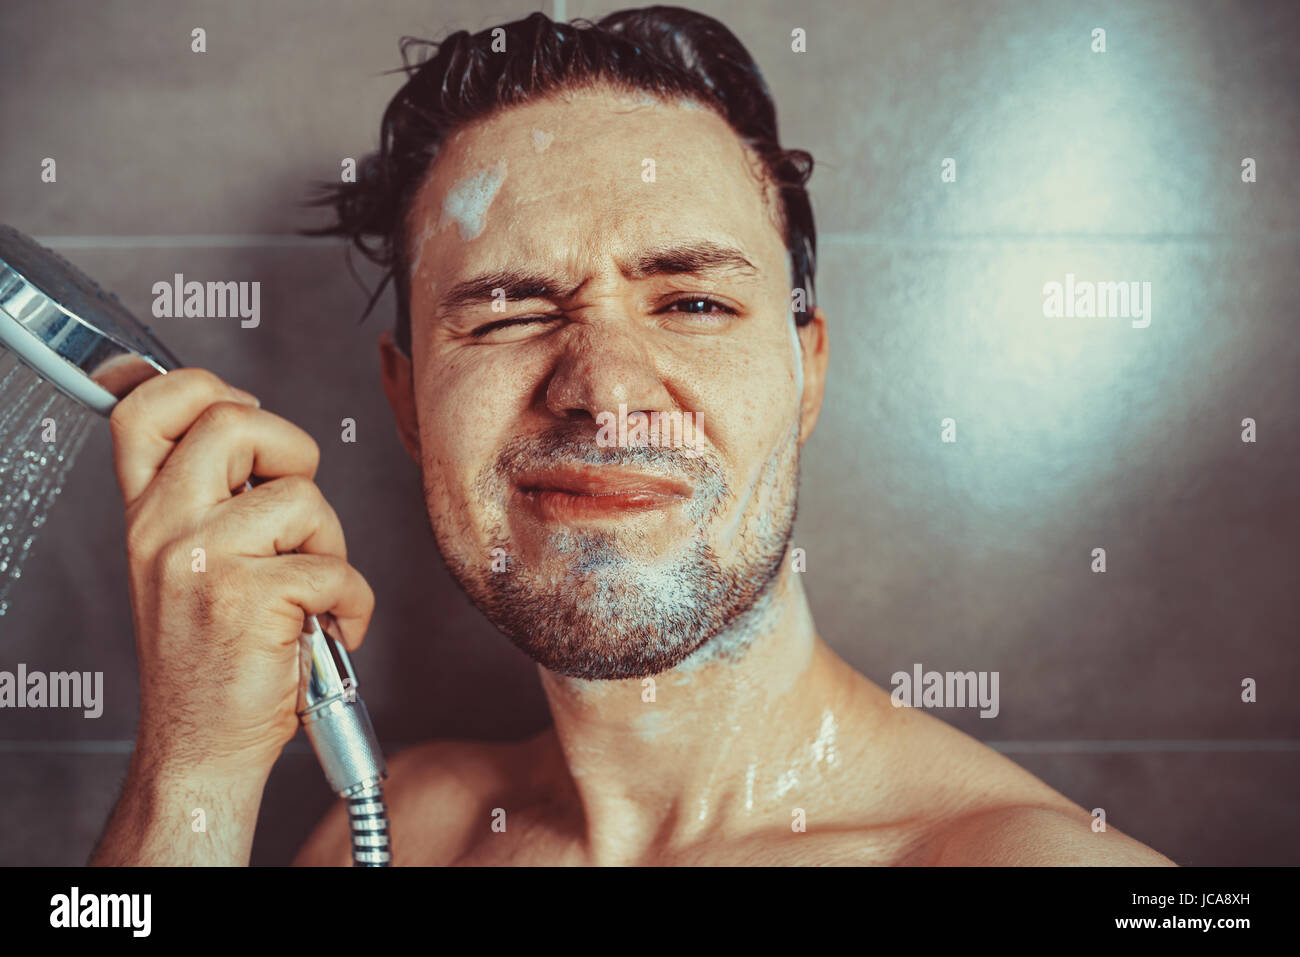 Young man washing head with shampoo in bathroom portrait. Unhappy emotions. - Stock Image